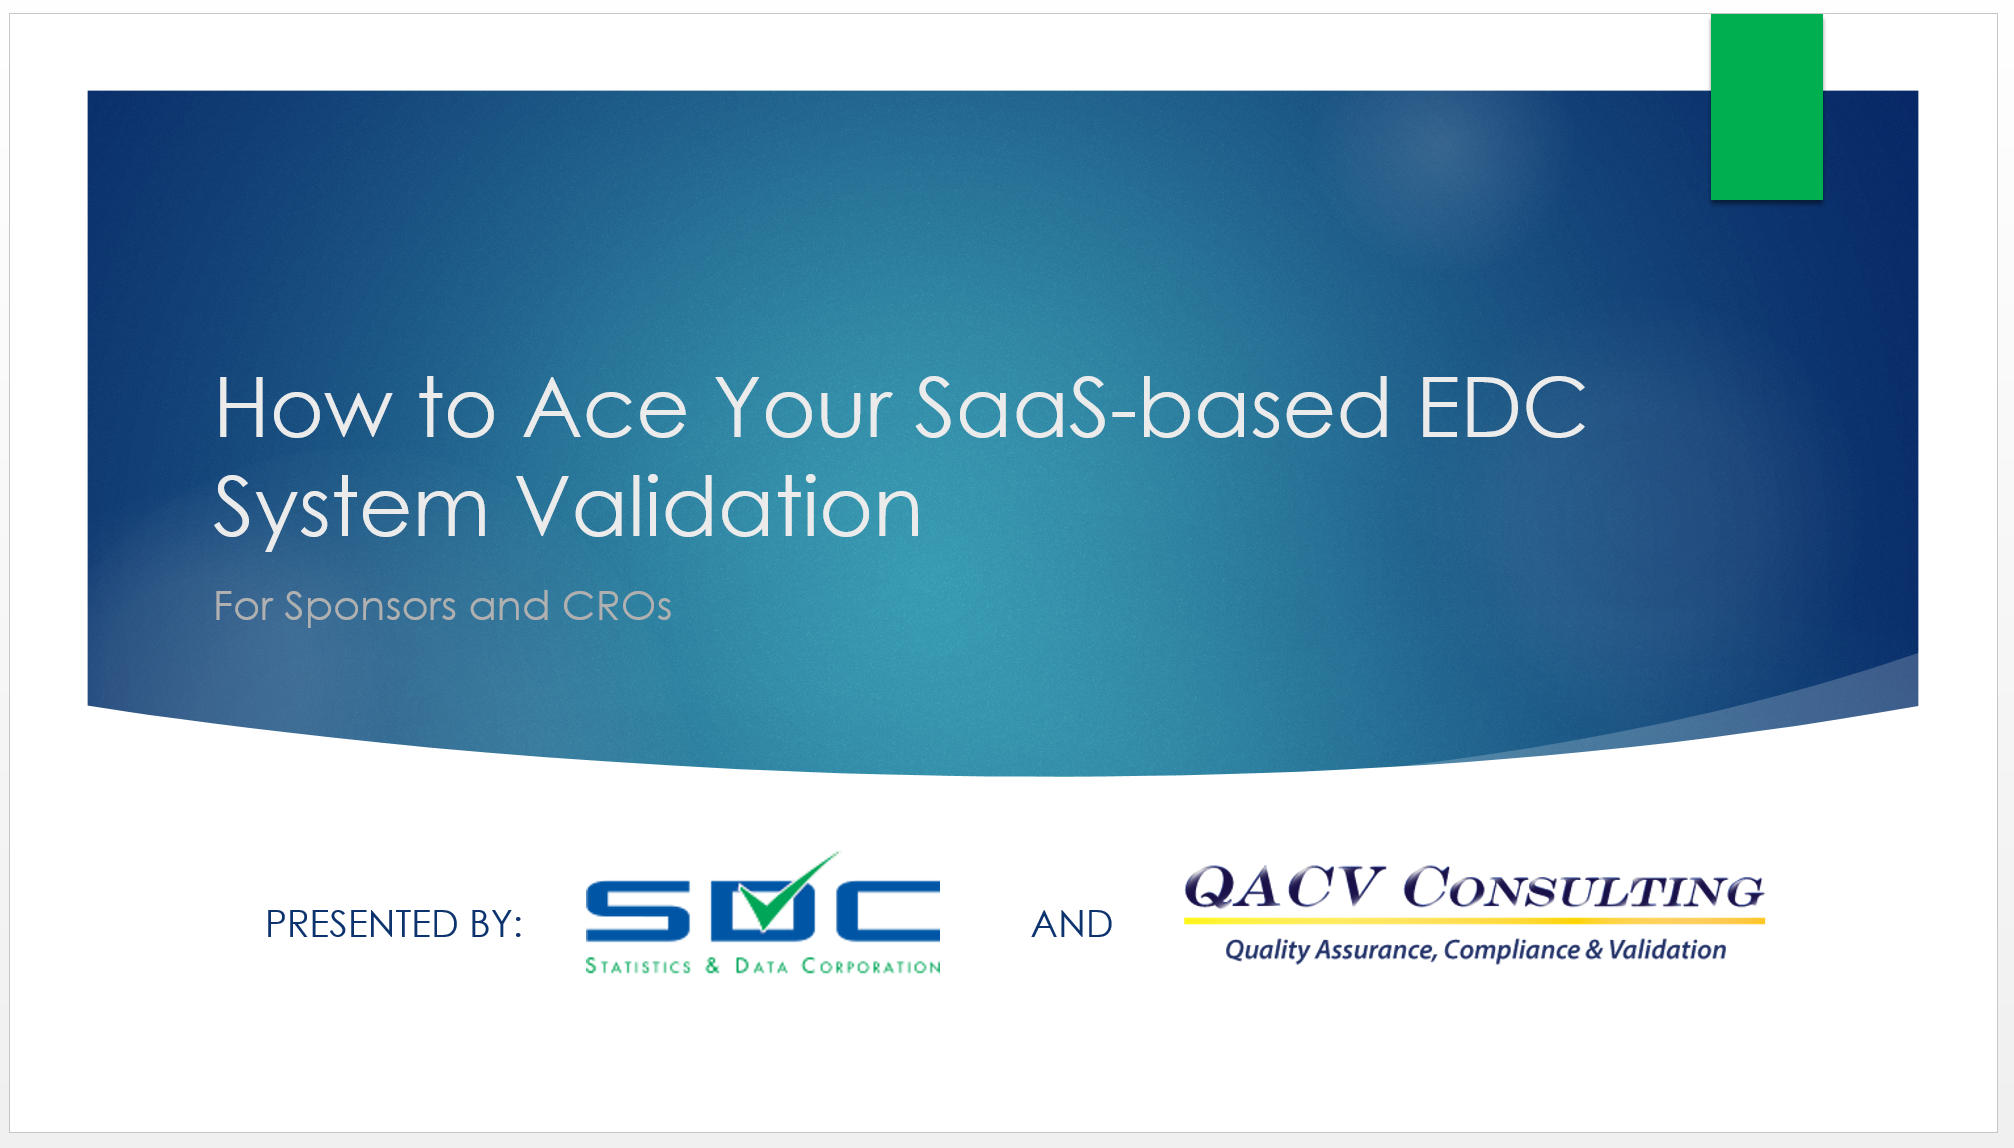 How_To_Ace_Your_SaaS-based_EDC_System_Validation_For_Sponsors_and_CROs.png